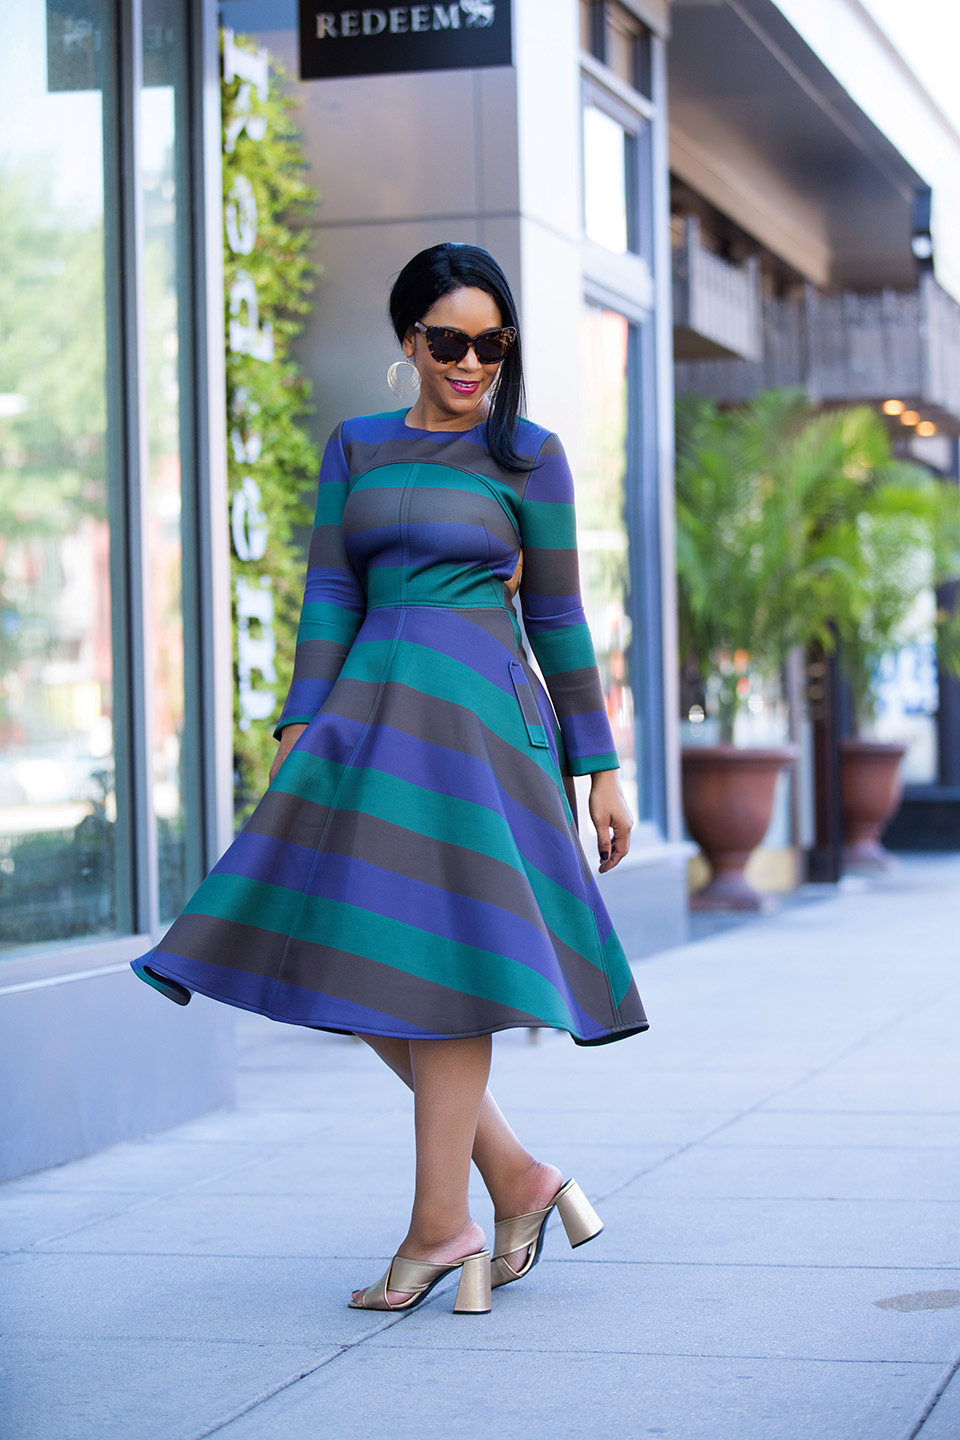 The Mullet Dress - What I'm Wearing: Chichwish Demure Green Striped Open-back Dress, Topshop RIOT Flared gold Mules, House of Harlow 1960 Chelsea Cat Eye Sunglasses in tortoiseshell, Charming Charlie Waved Layer Dangle Earrings